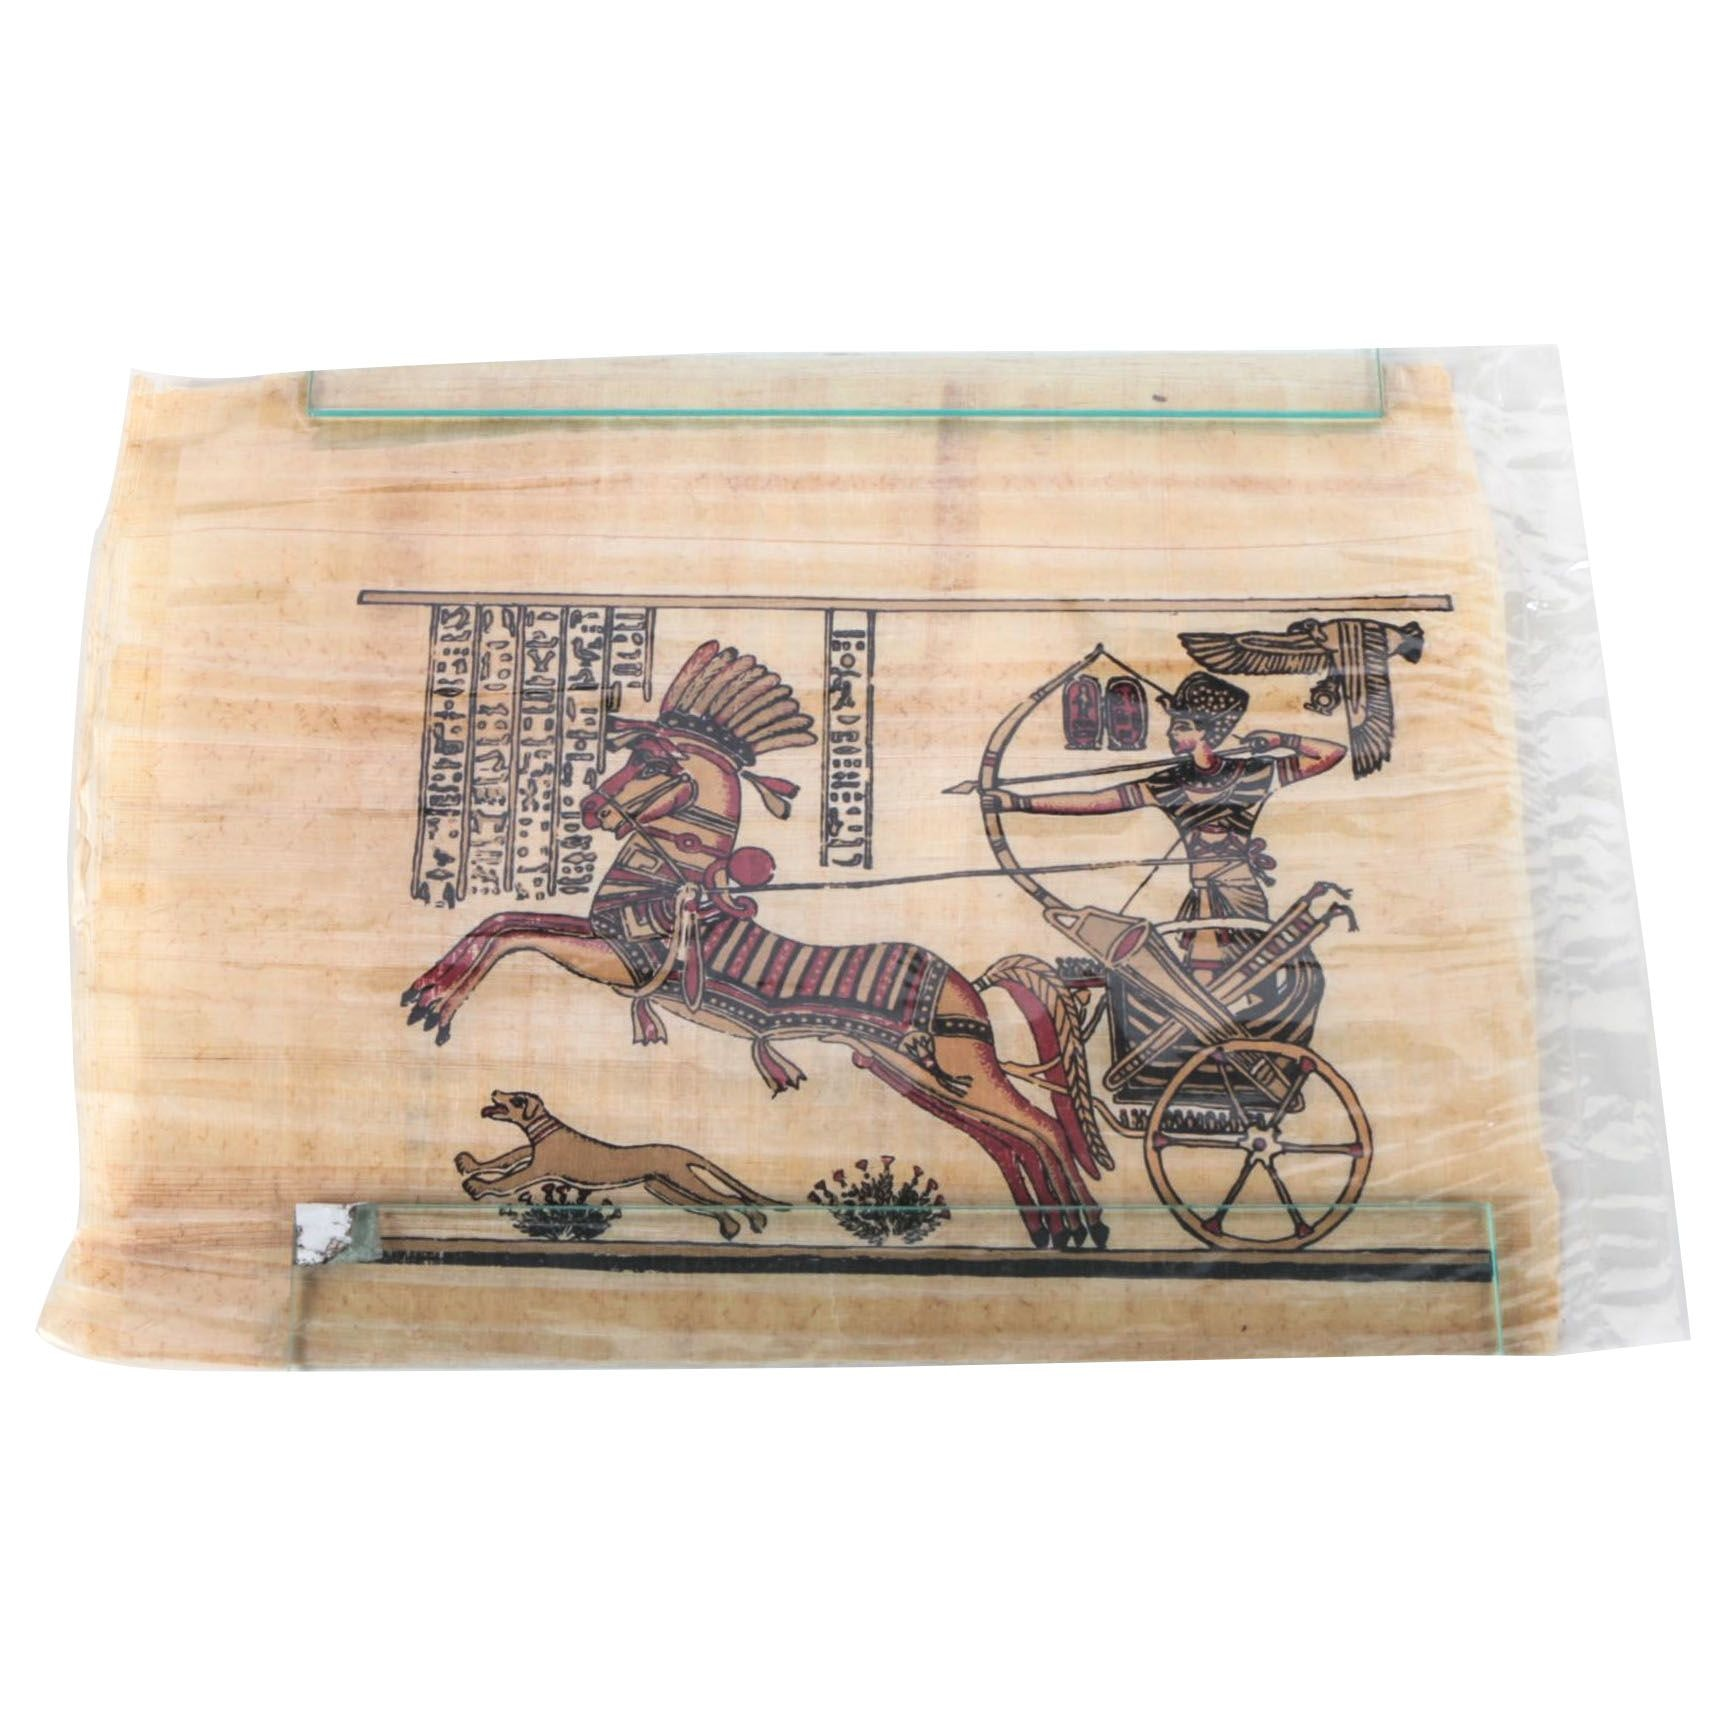 Serigraph on Papyrus of a Chariot Rider